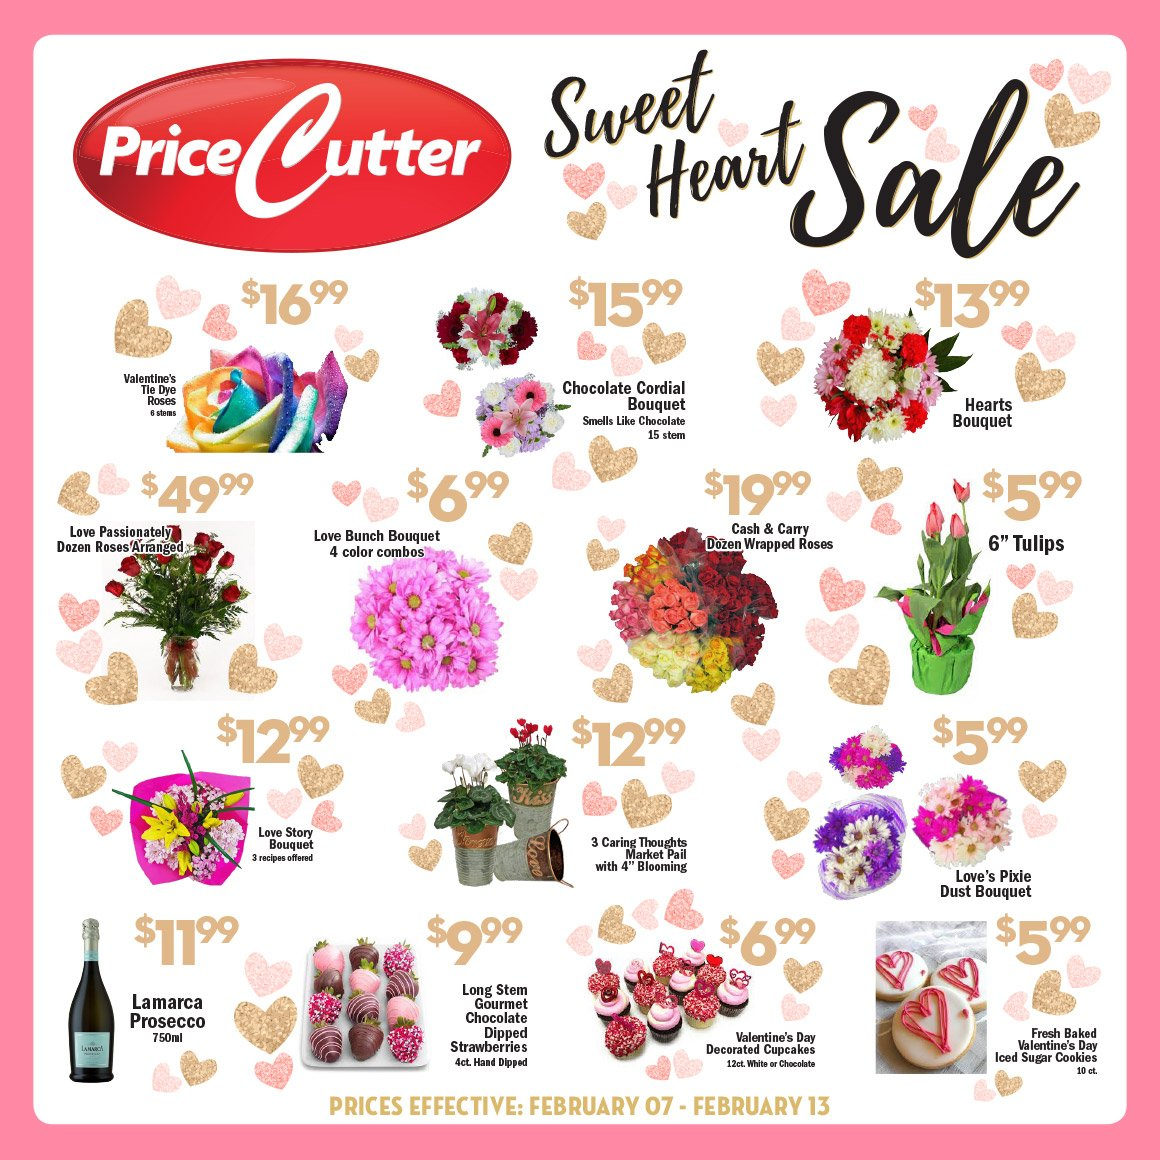 Sweet Heart Sale